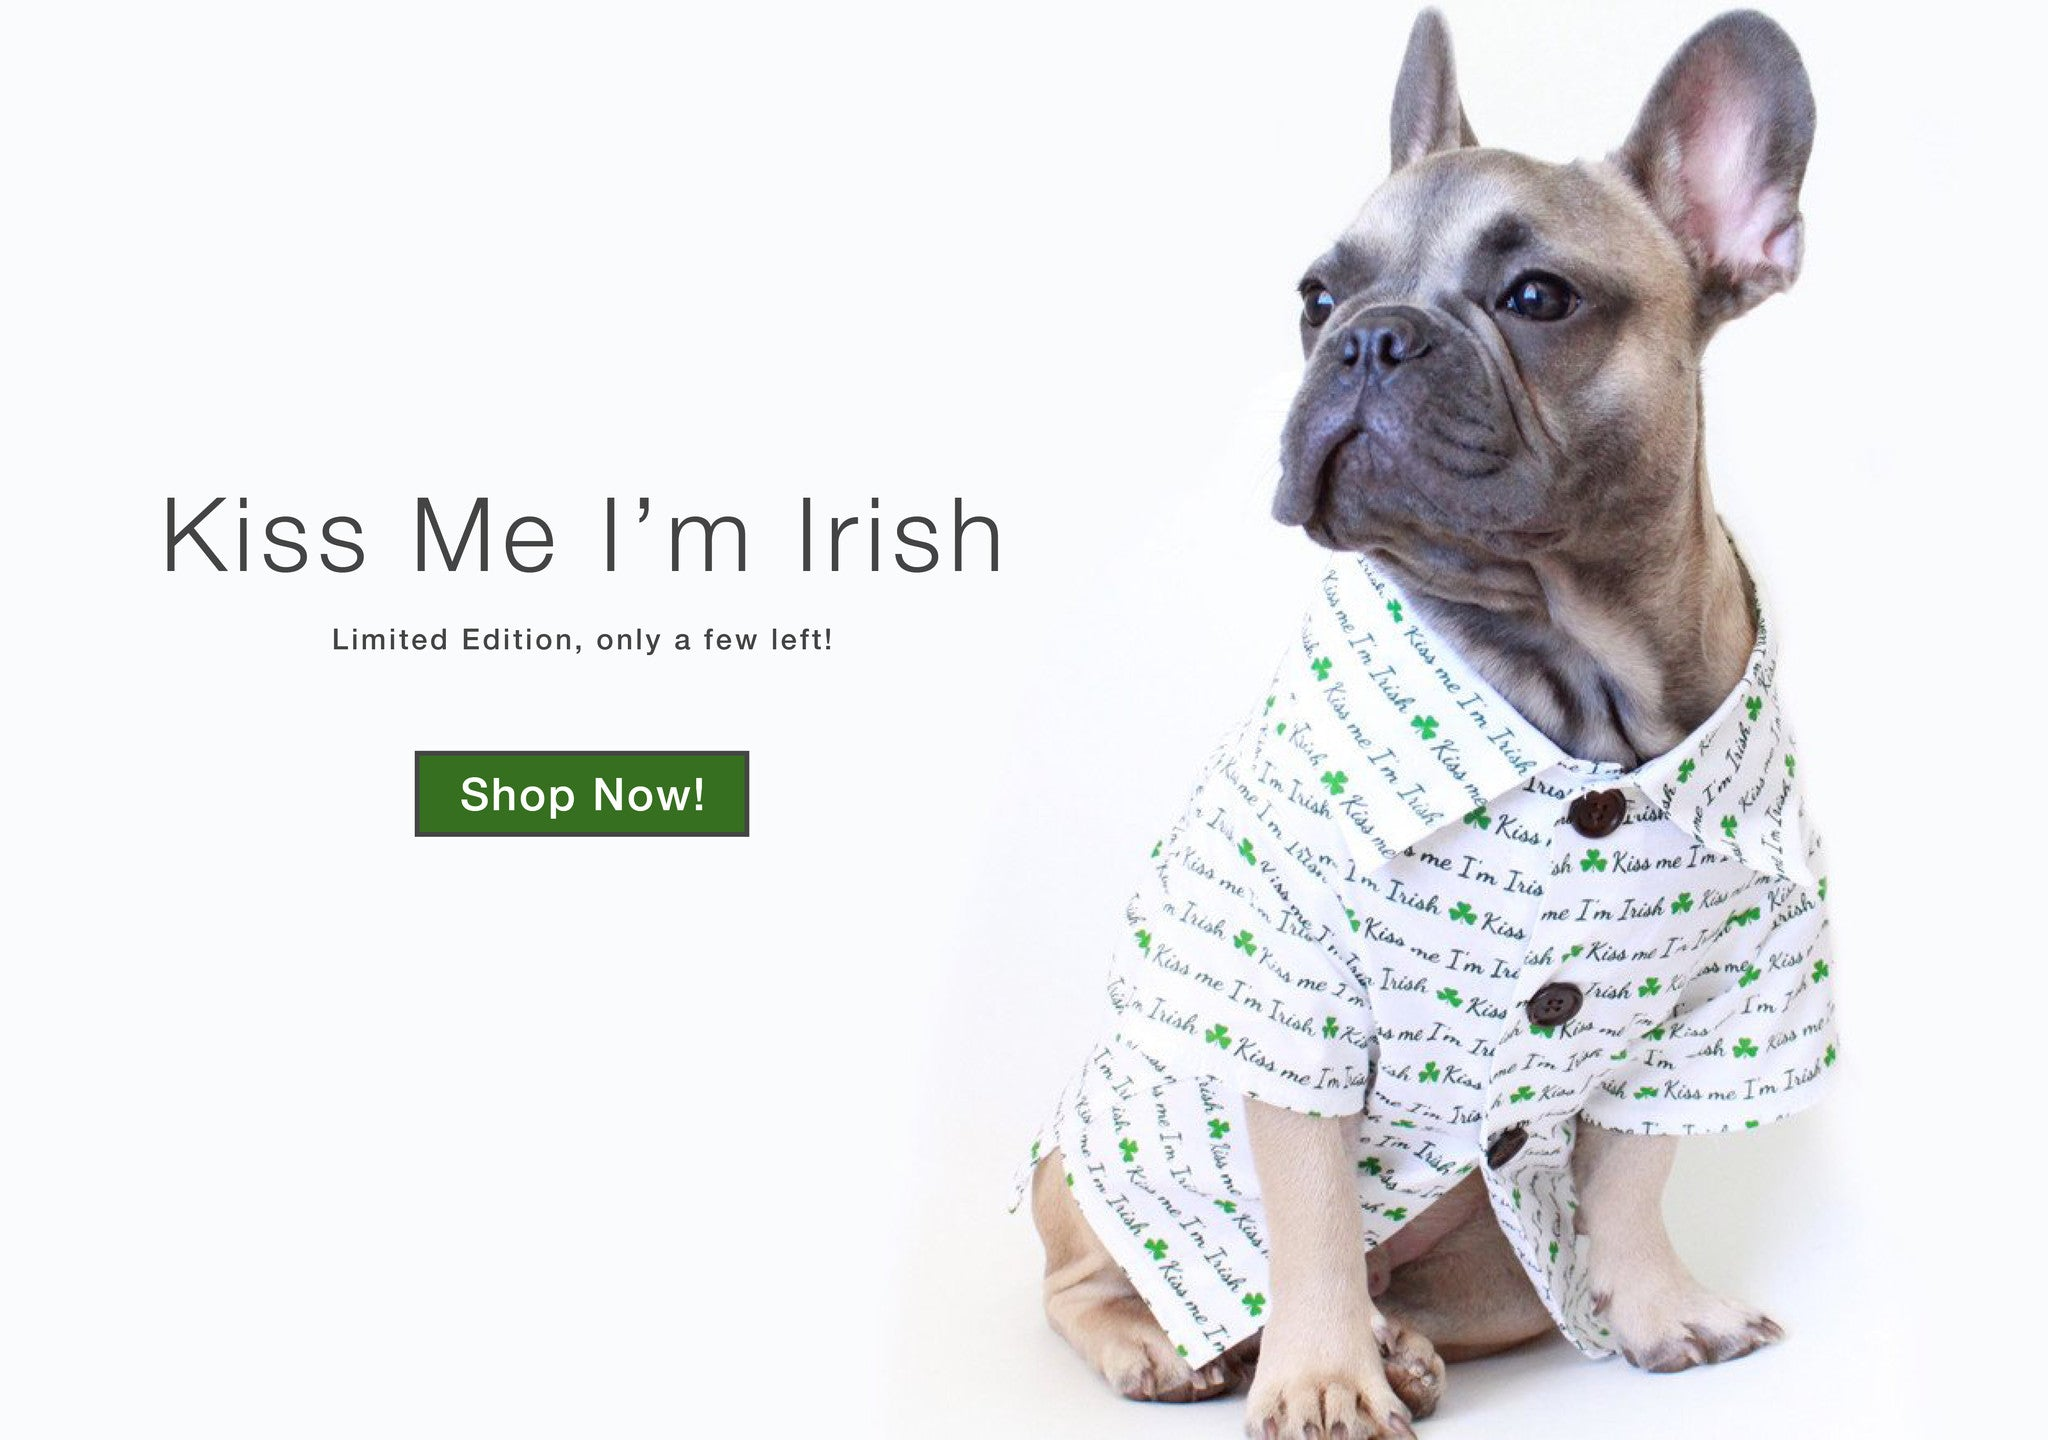 Kiss Me I'm Irish Dog Shirt for St. Patrick's Day by Dog Threads